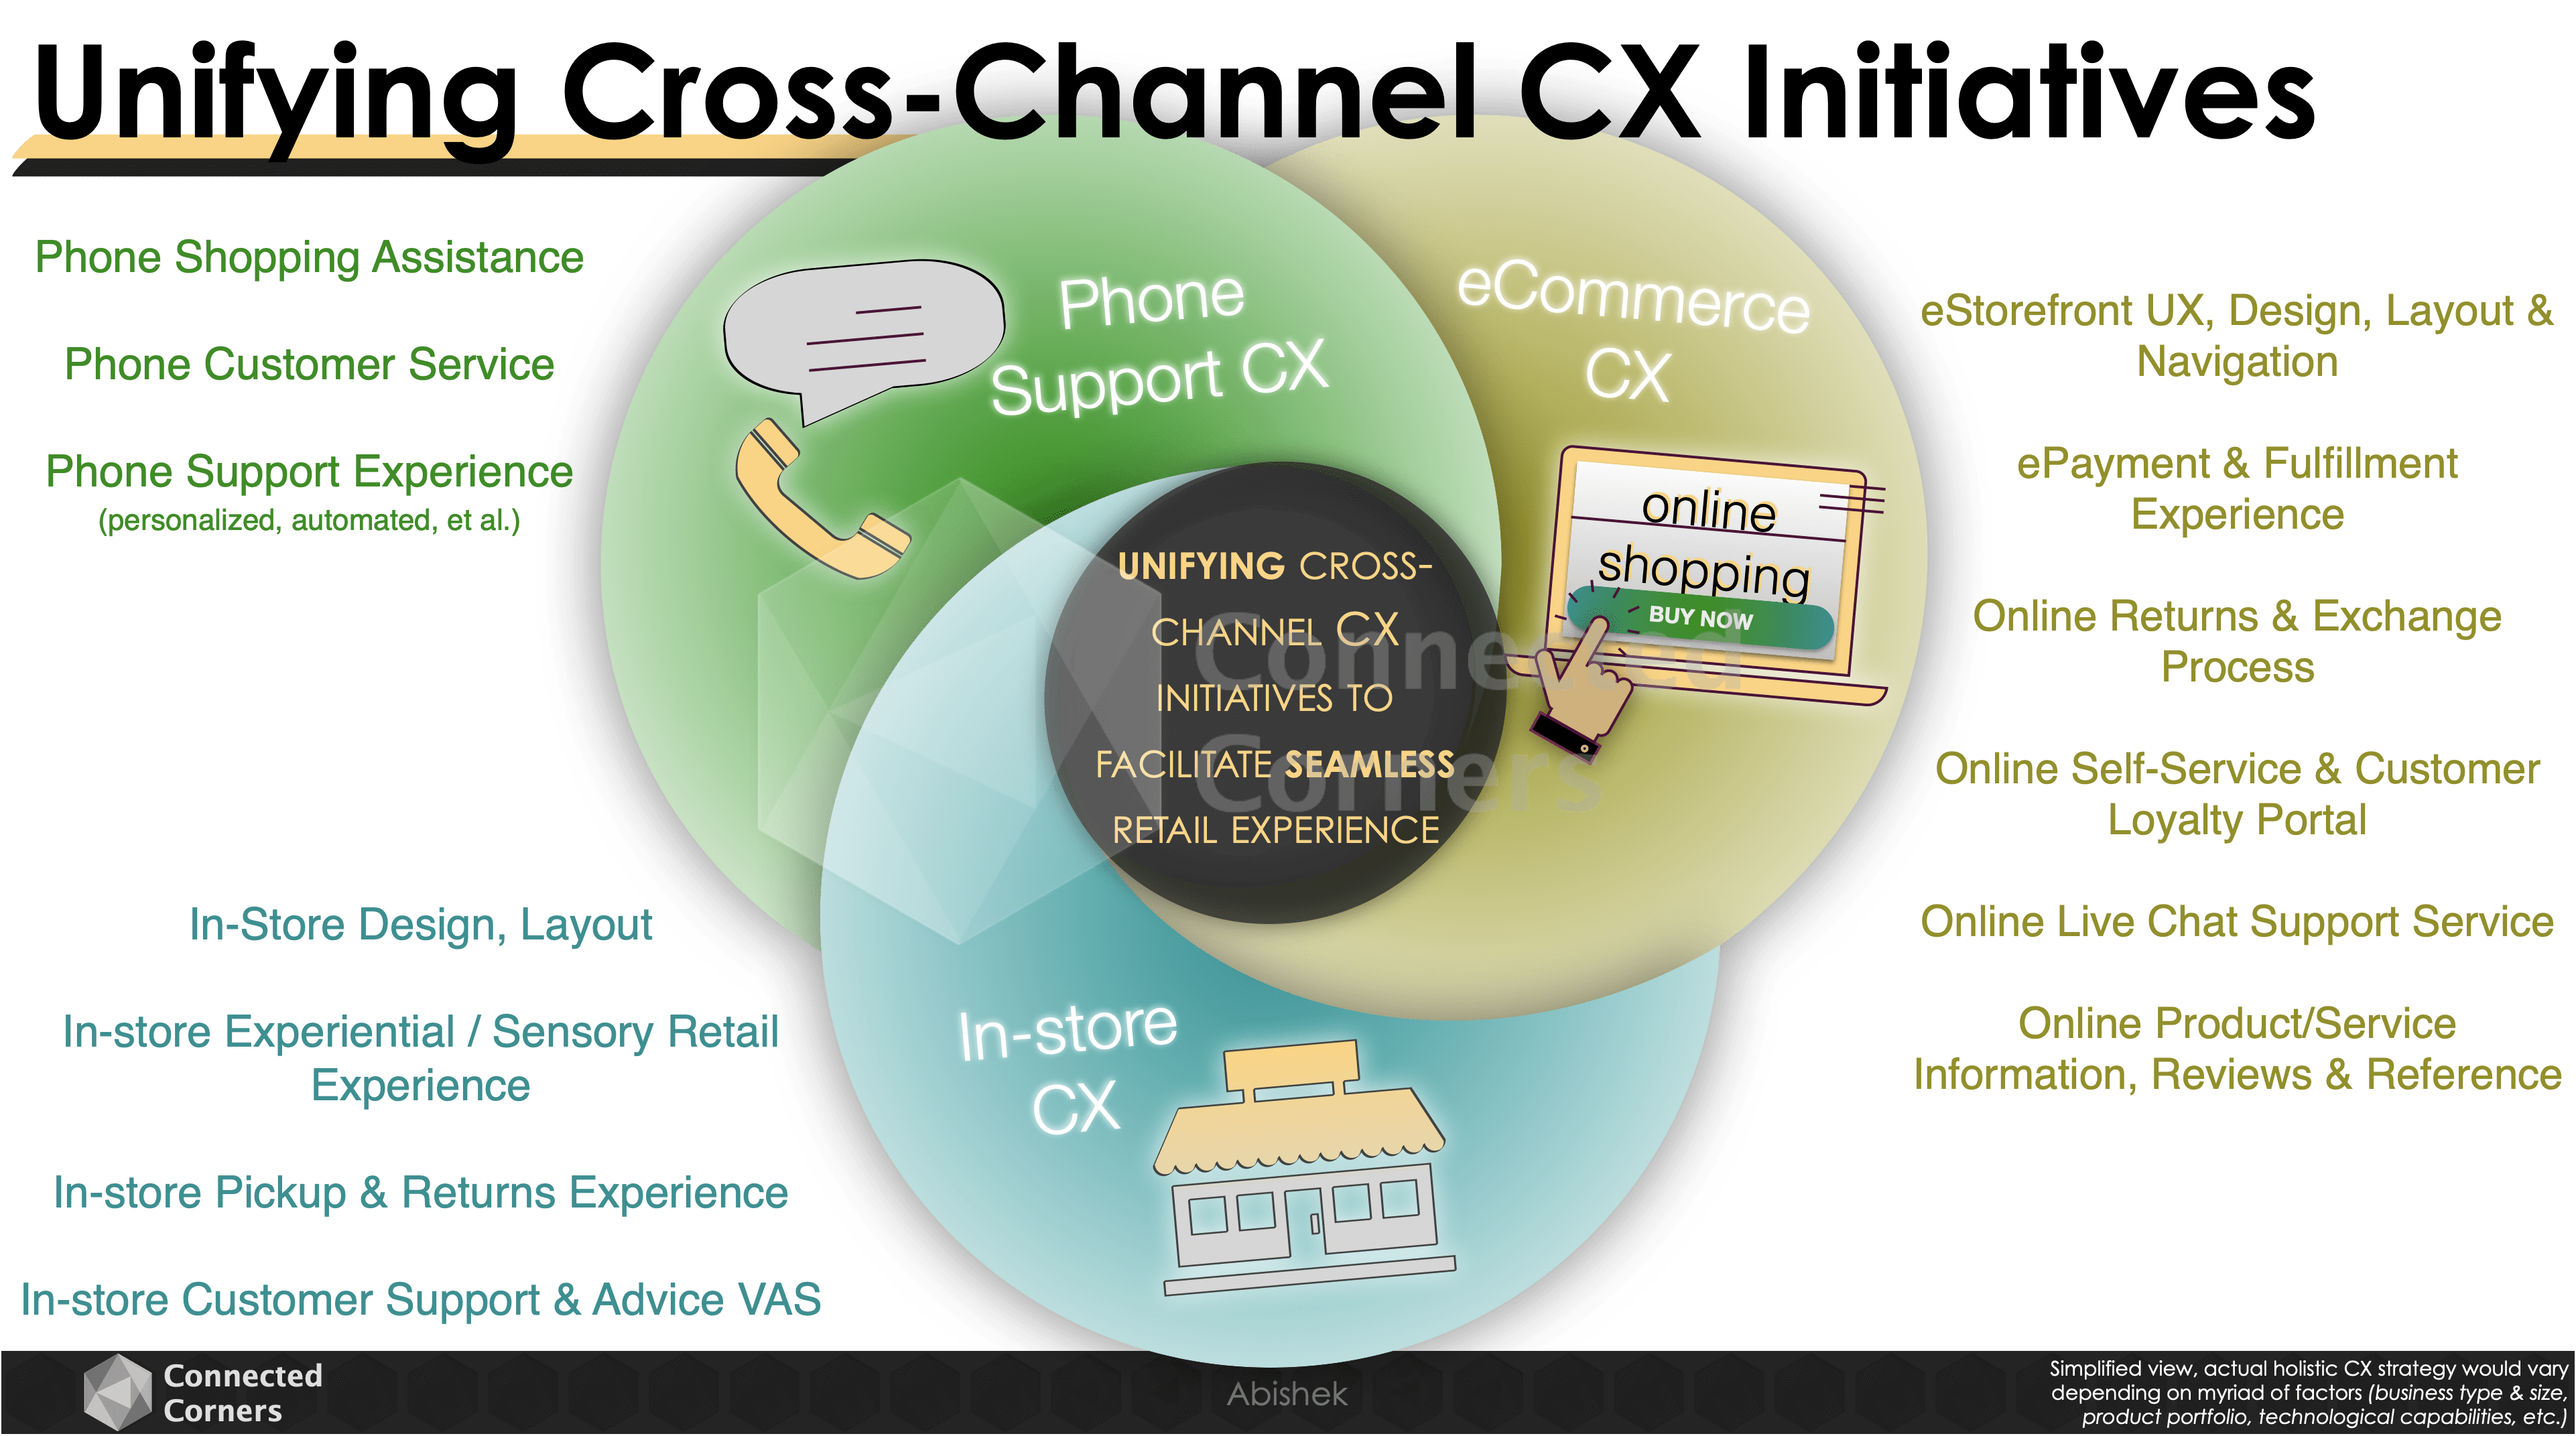 Unifying Cross Channel CX Initiatives - Connected Corners